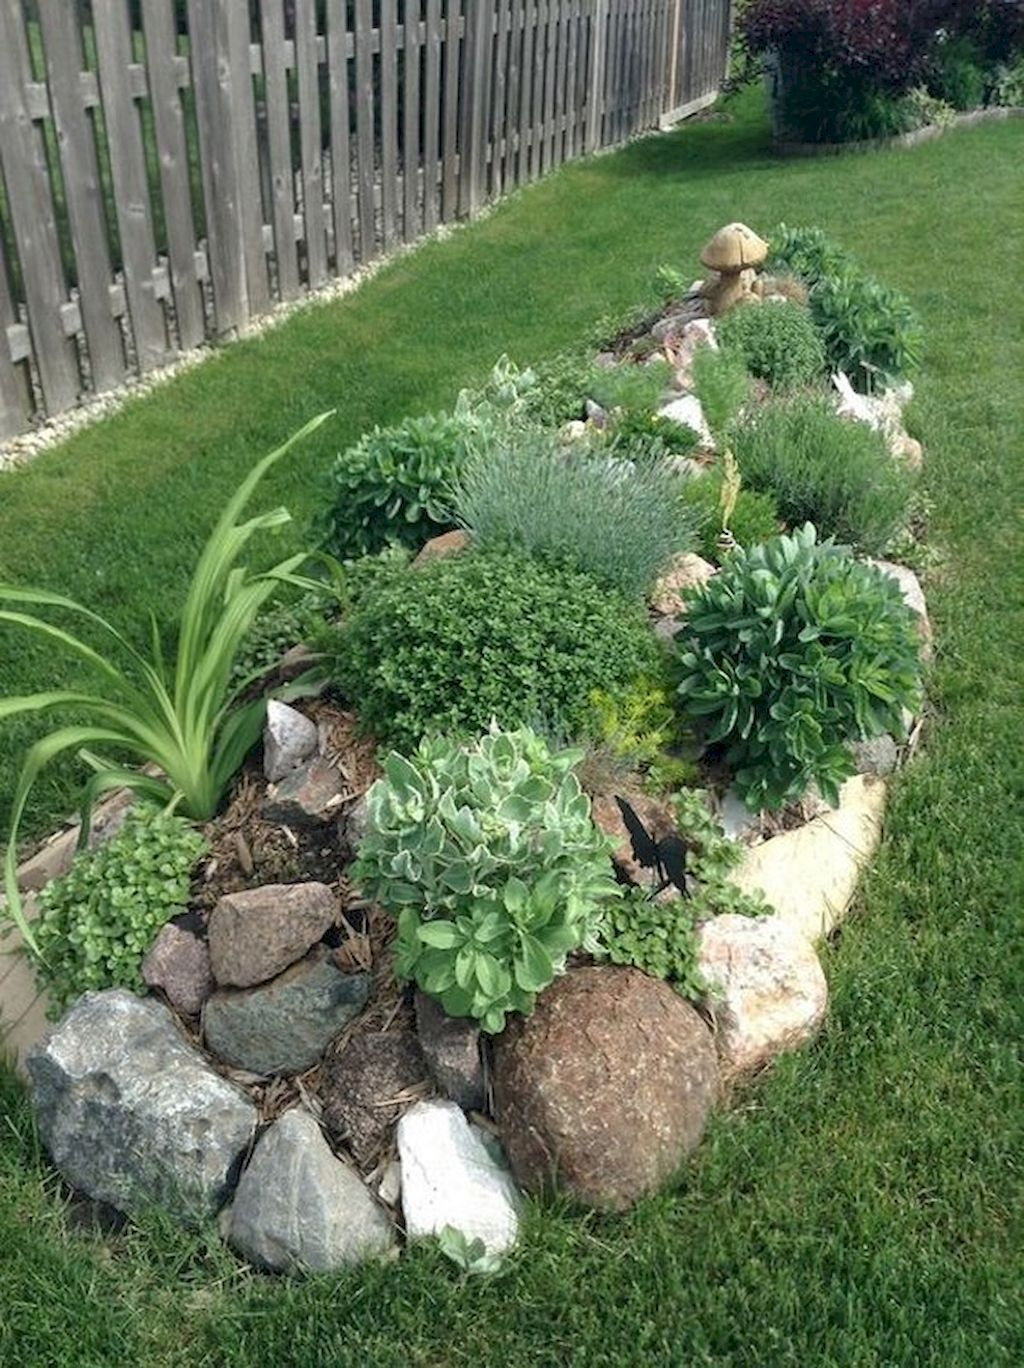 Awesome 80 Front Yard Rock Garden Landscaping Ideas Https Insidecorate Com 80 Front Yard Ro Rock Garden Design Rock Garden Landscaping Landscaping With Rocks